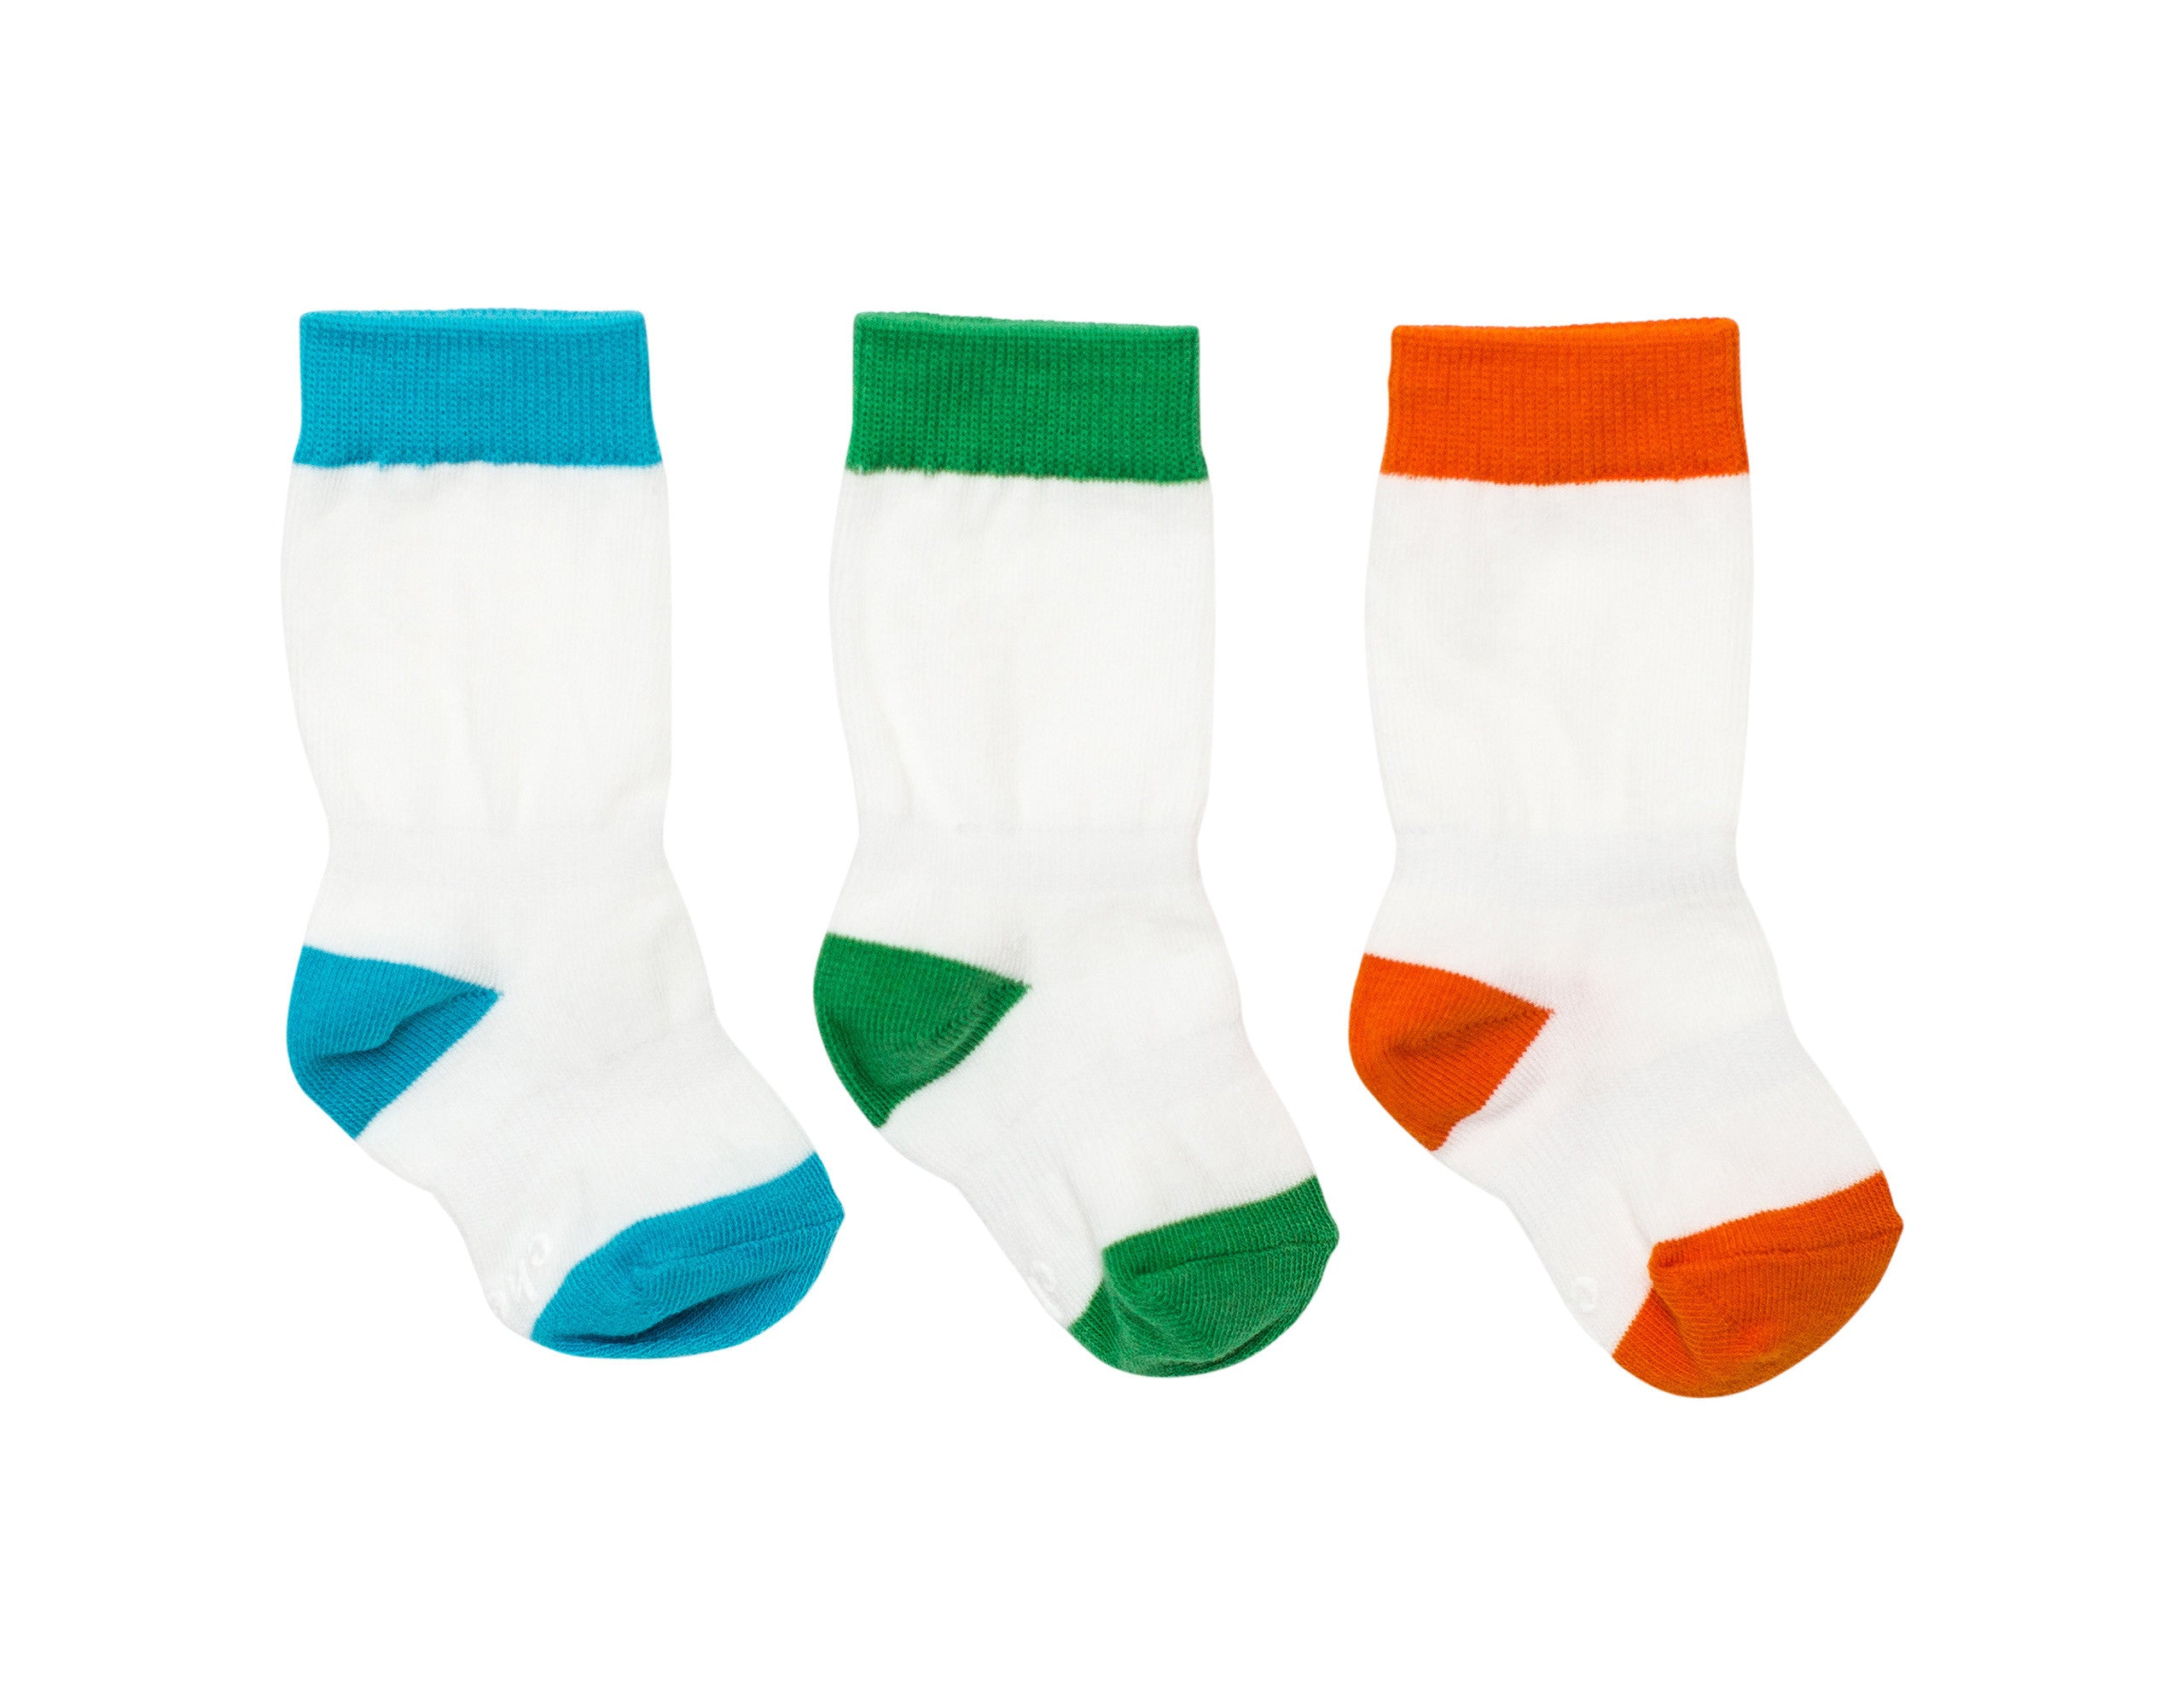 ... Blue, Orange, Green Mixed Colors Knee Socks 3 Pack (Newborn) ...